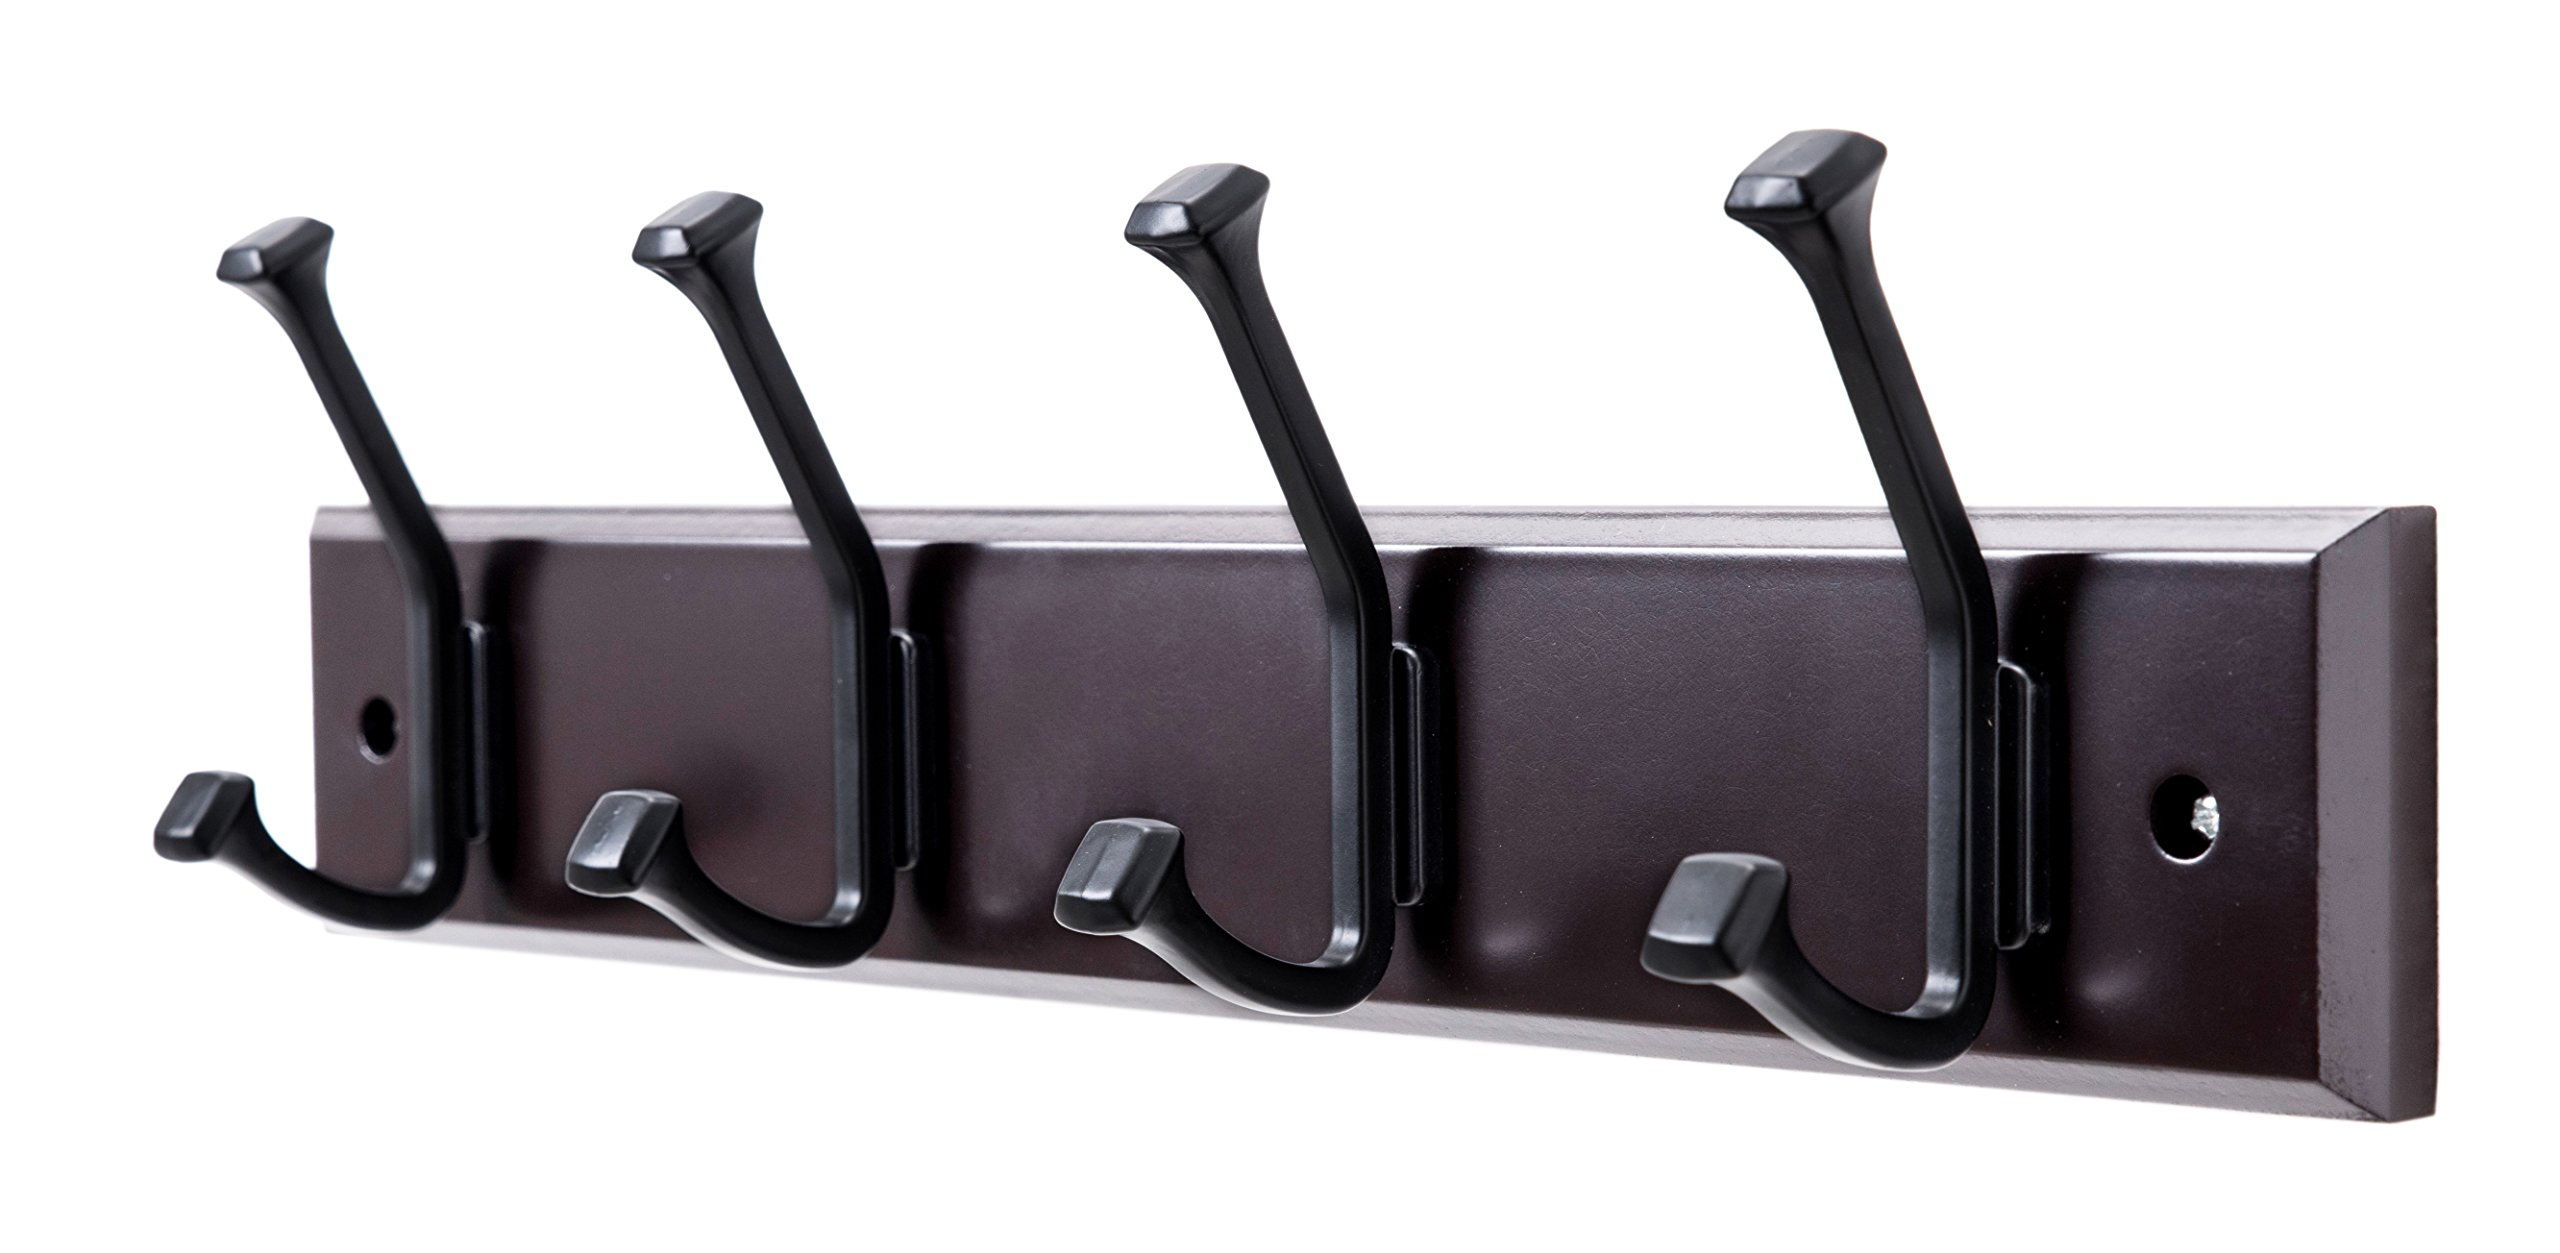 Finnhomy Wooden Coat Hooks Wall Hooks 4 Dual Hooks 16-Inch Rail/Pilltop Rack Long Coat Rack for Clothes Entryway Foyer Storage Organization Bathroom Towel Key Accessory Espresso/Black Hook - Stylish and Sturdy Hanger: The well-made coat rack has 4 Dual hooks, and it's perfect storage and organizing solution for your coats, hats, umbrellas, handbags, keys in any entryway or foyer, even in cabinet. New Design Pilltop hooks: The new style hooks are crafted with high standard zinc with classical oil rubbed bronze finished, anti-fading and rust-proof,providing a warm touch and a decorative looking. Easy Assembly:Package including the screws and anchors,suitable to be installed on brick wall. Installation instruction included. If well installed, the weight capacity can hold up to 20 lbs. - entryway-furniture-decor, entryway-laundry-room, coat-racks - 71dLSnuqgqL -